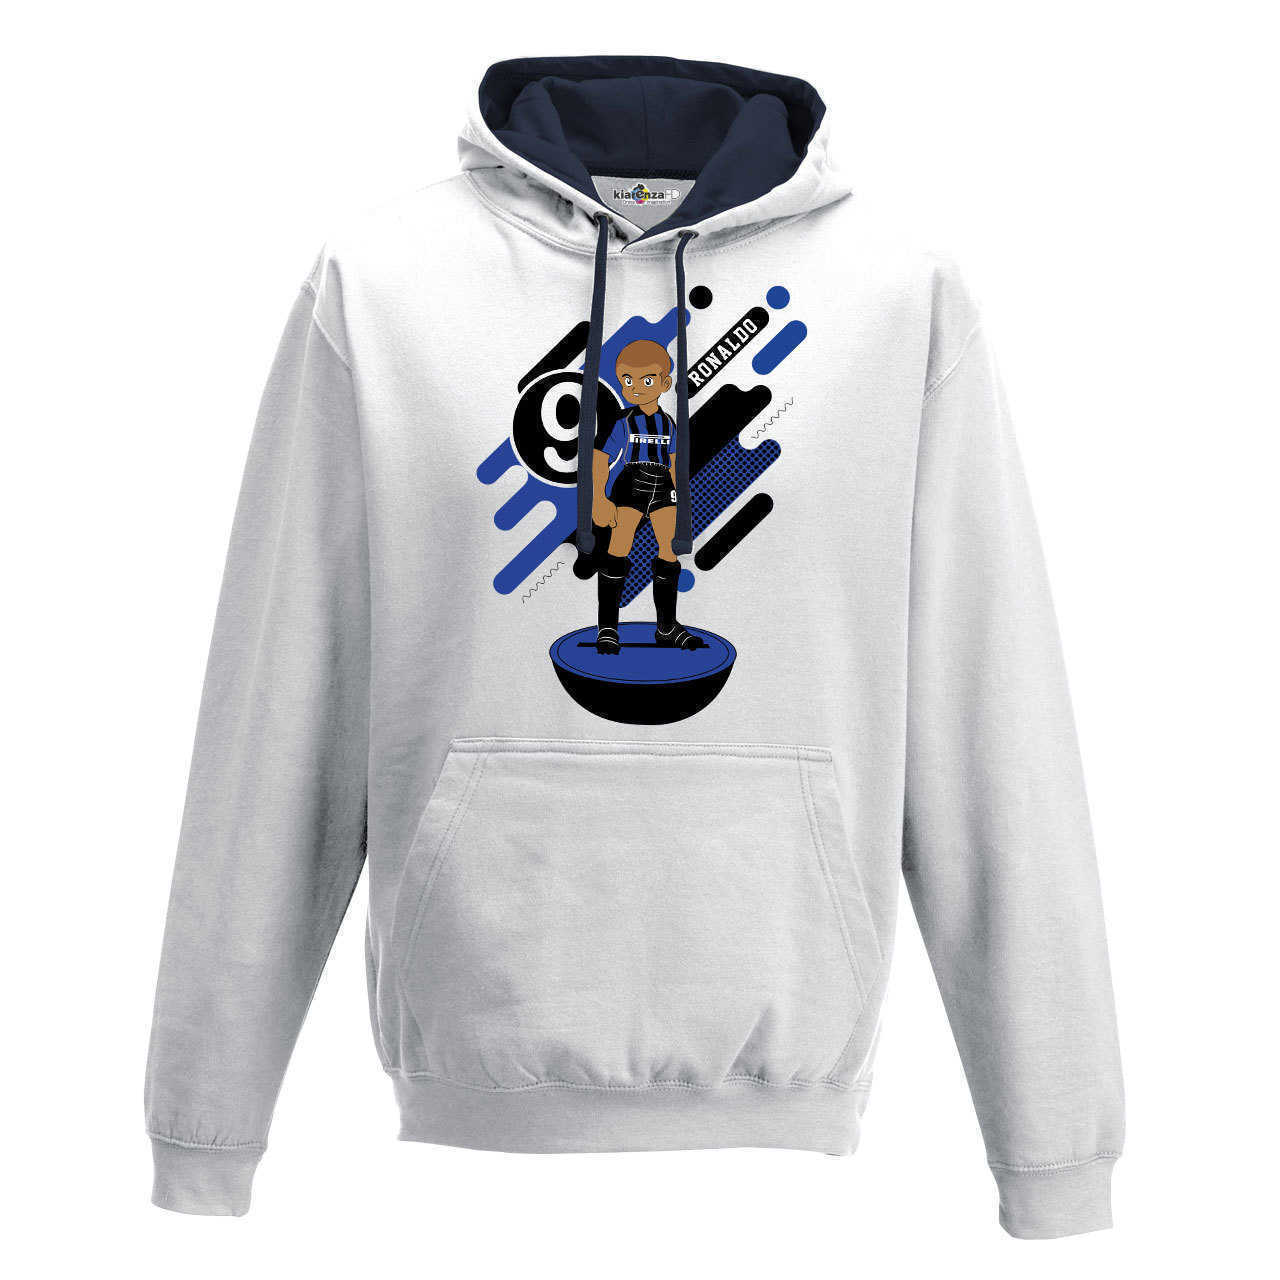 Hood Sweatshirt Bico <font><b>Soccer</b></font> Manga Ronaldo <font><b>Inter</b></font> <font><b>Milan</b></font> Legend Spoof Subbuteo Holly and Benji S image